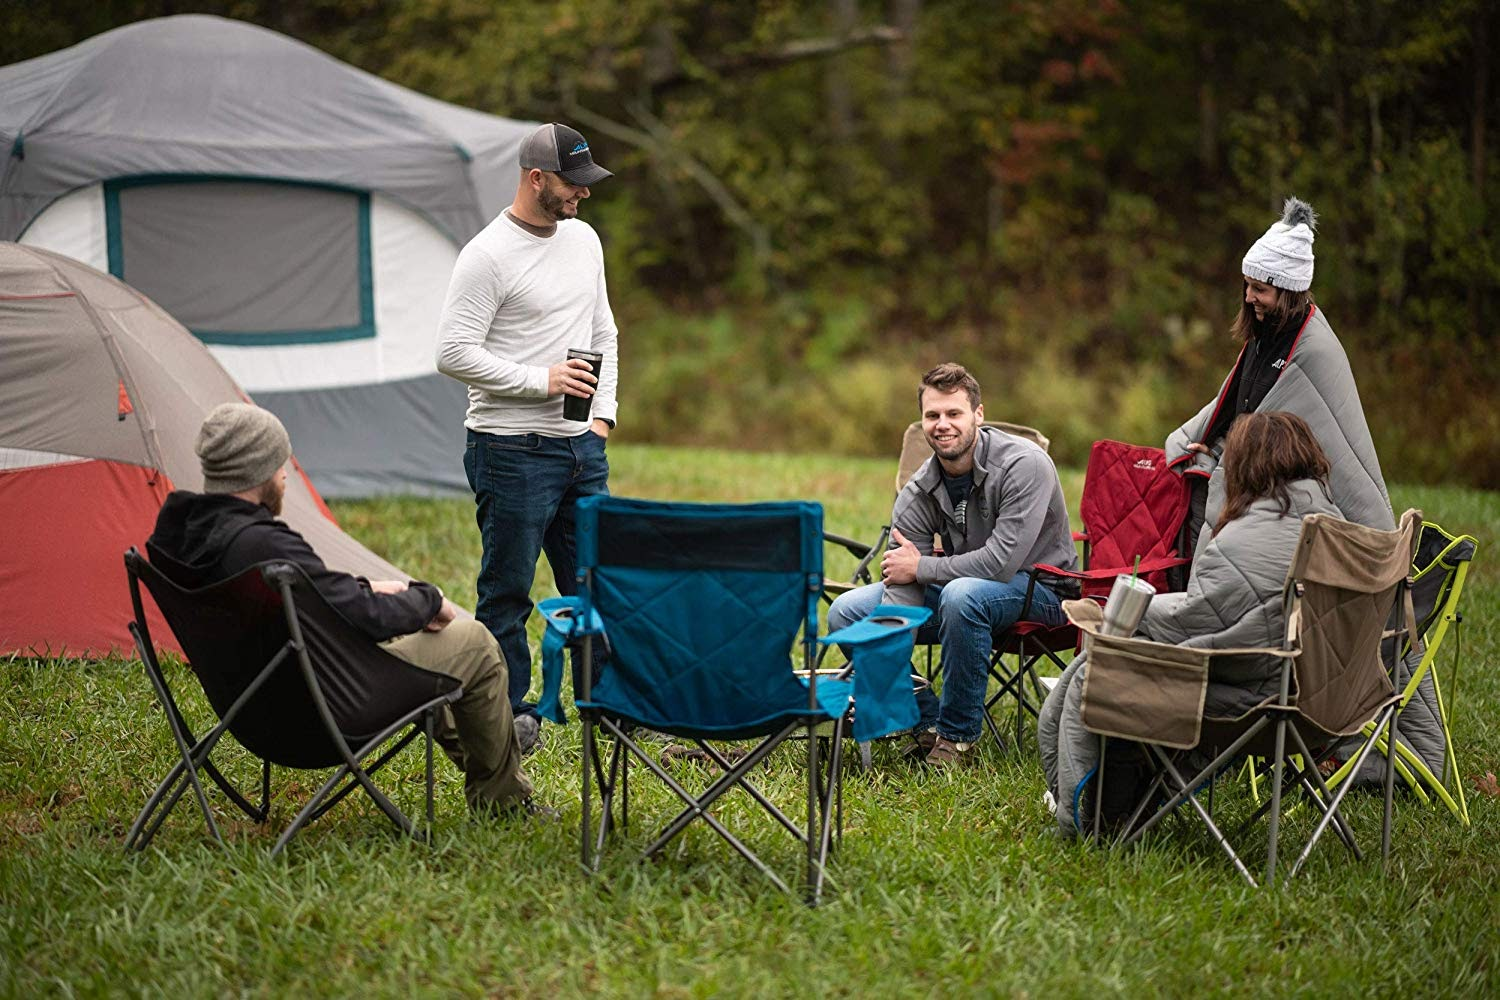 5 Best Camping Chairs for Outdoor Adventures